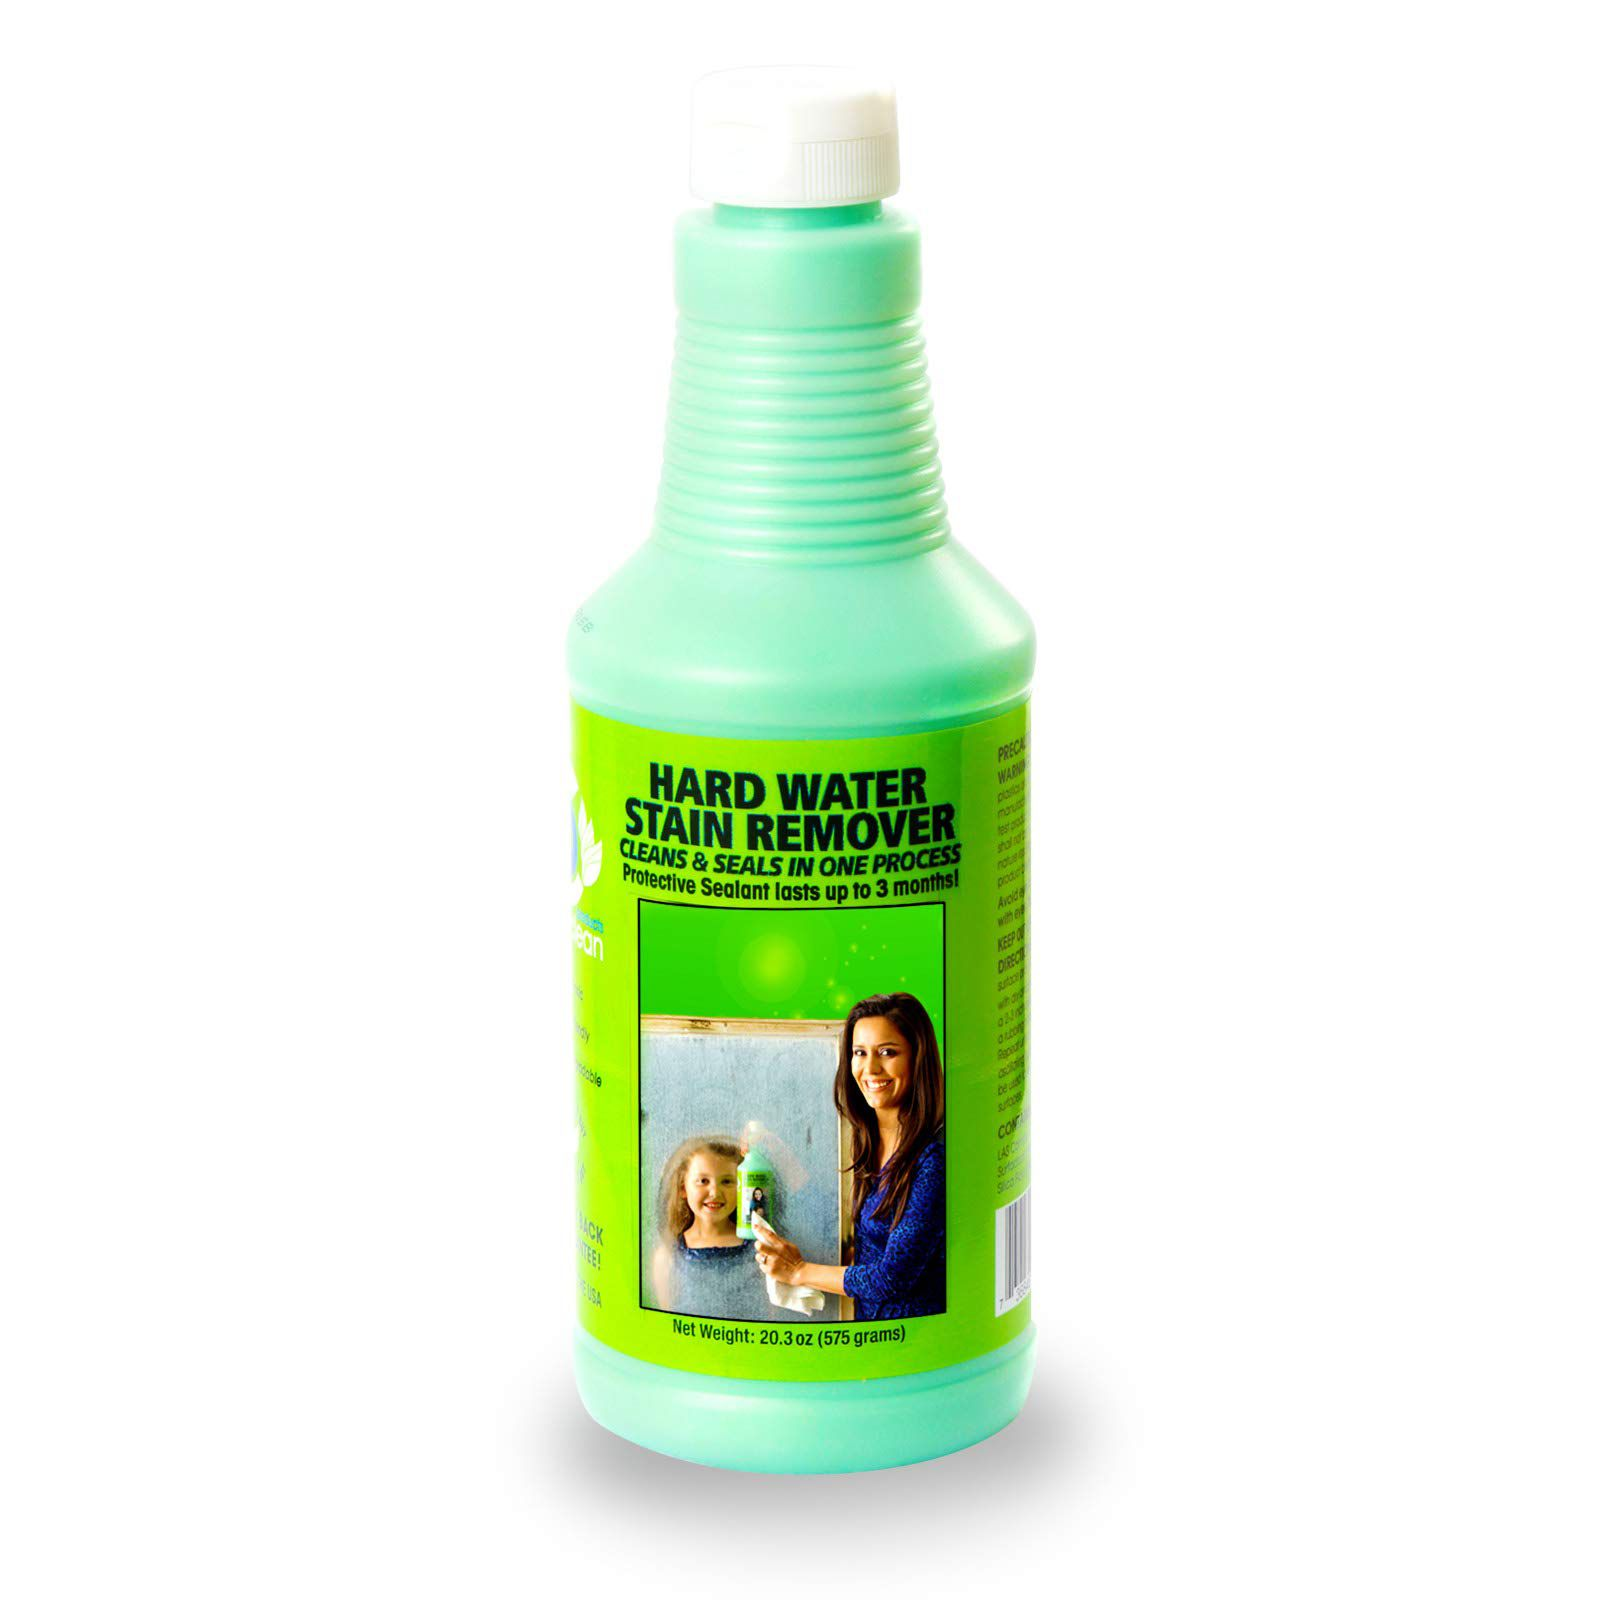 Bio Clean Hard Water Stain Remover